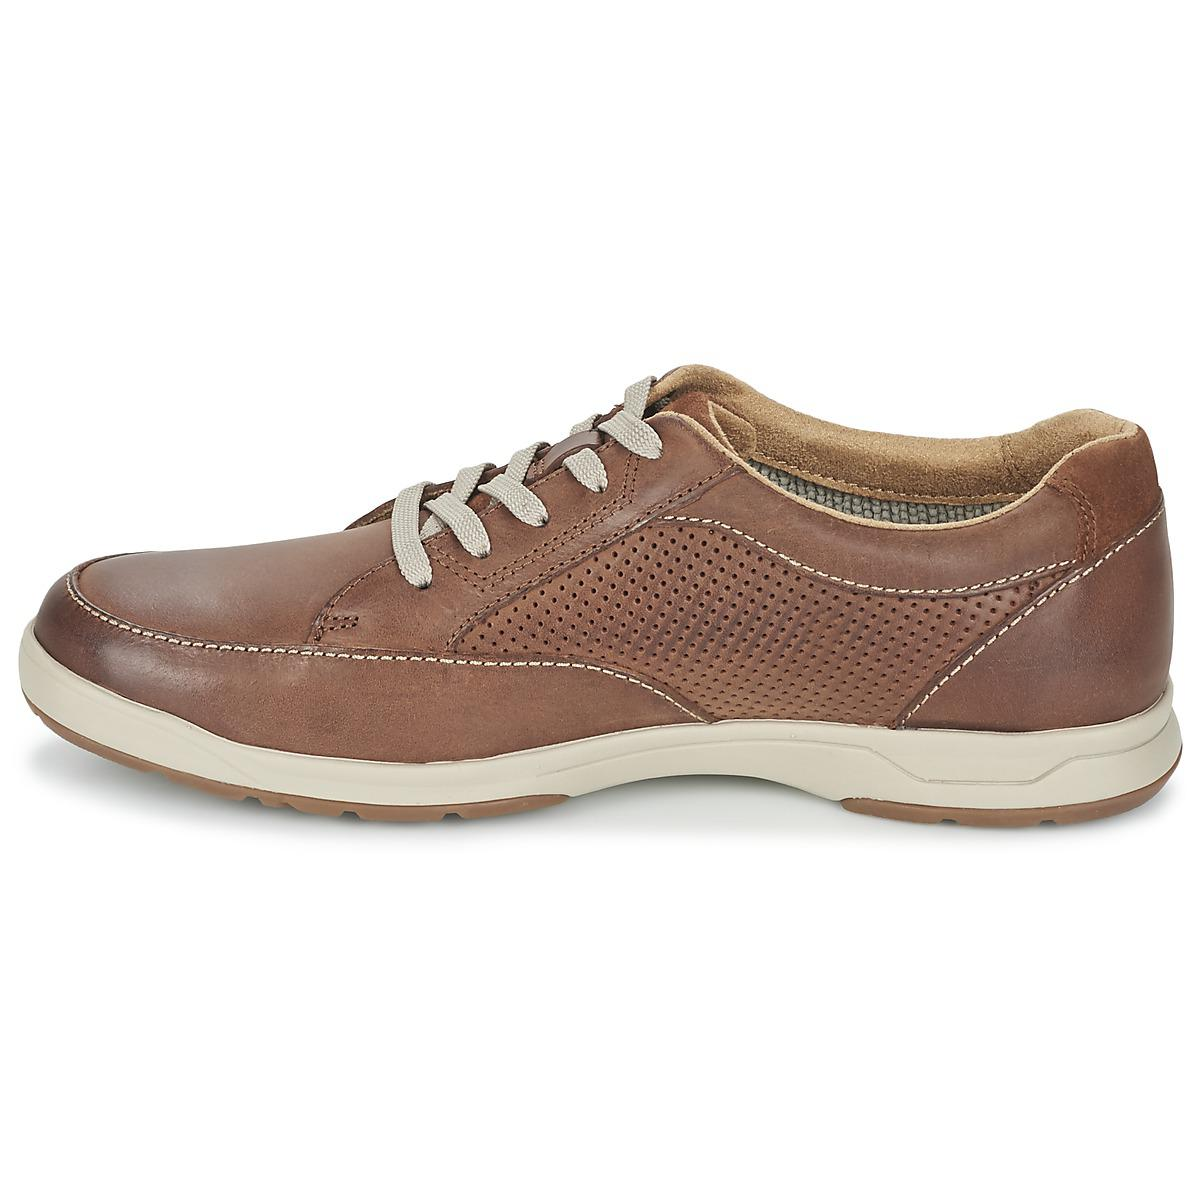 Clarks Leather Stafford Park5 Shoes (trainers) in Brown for Men